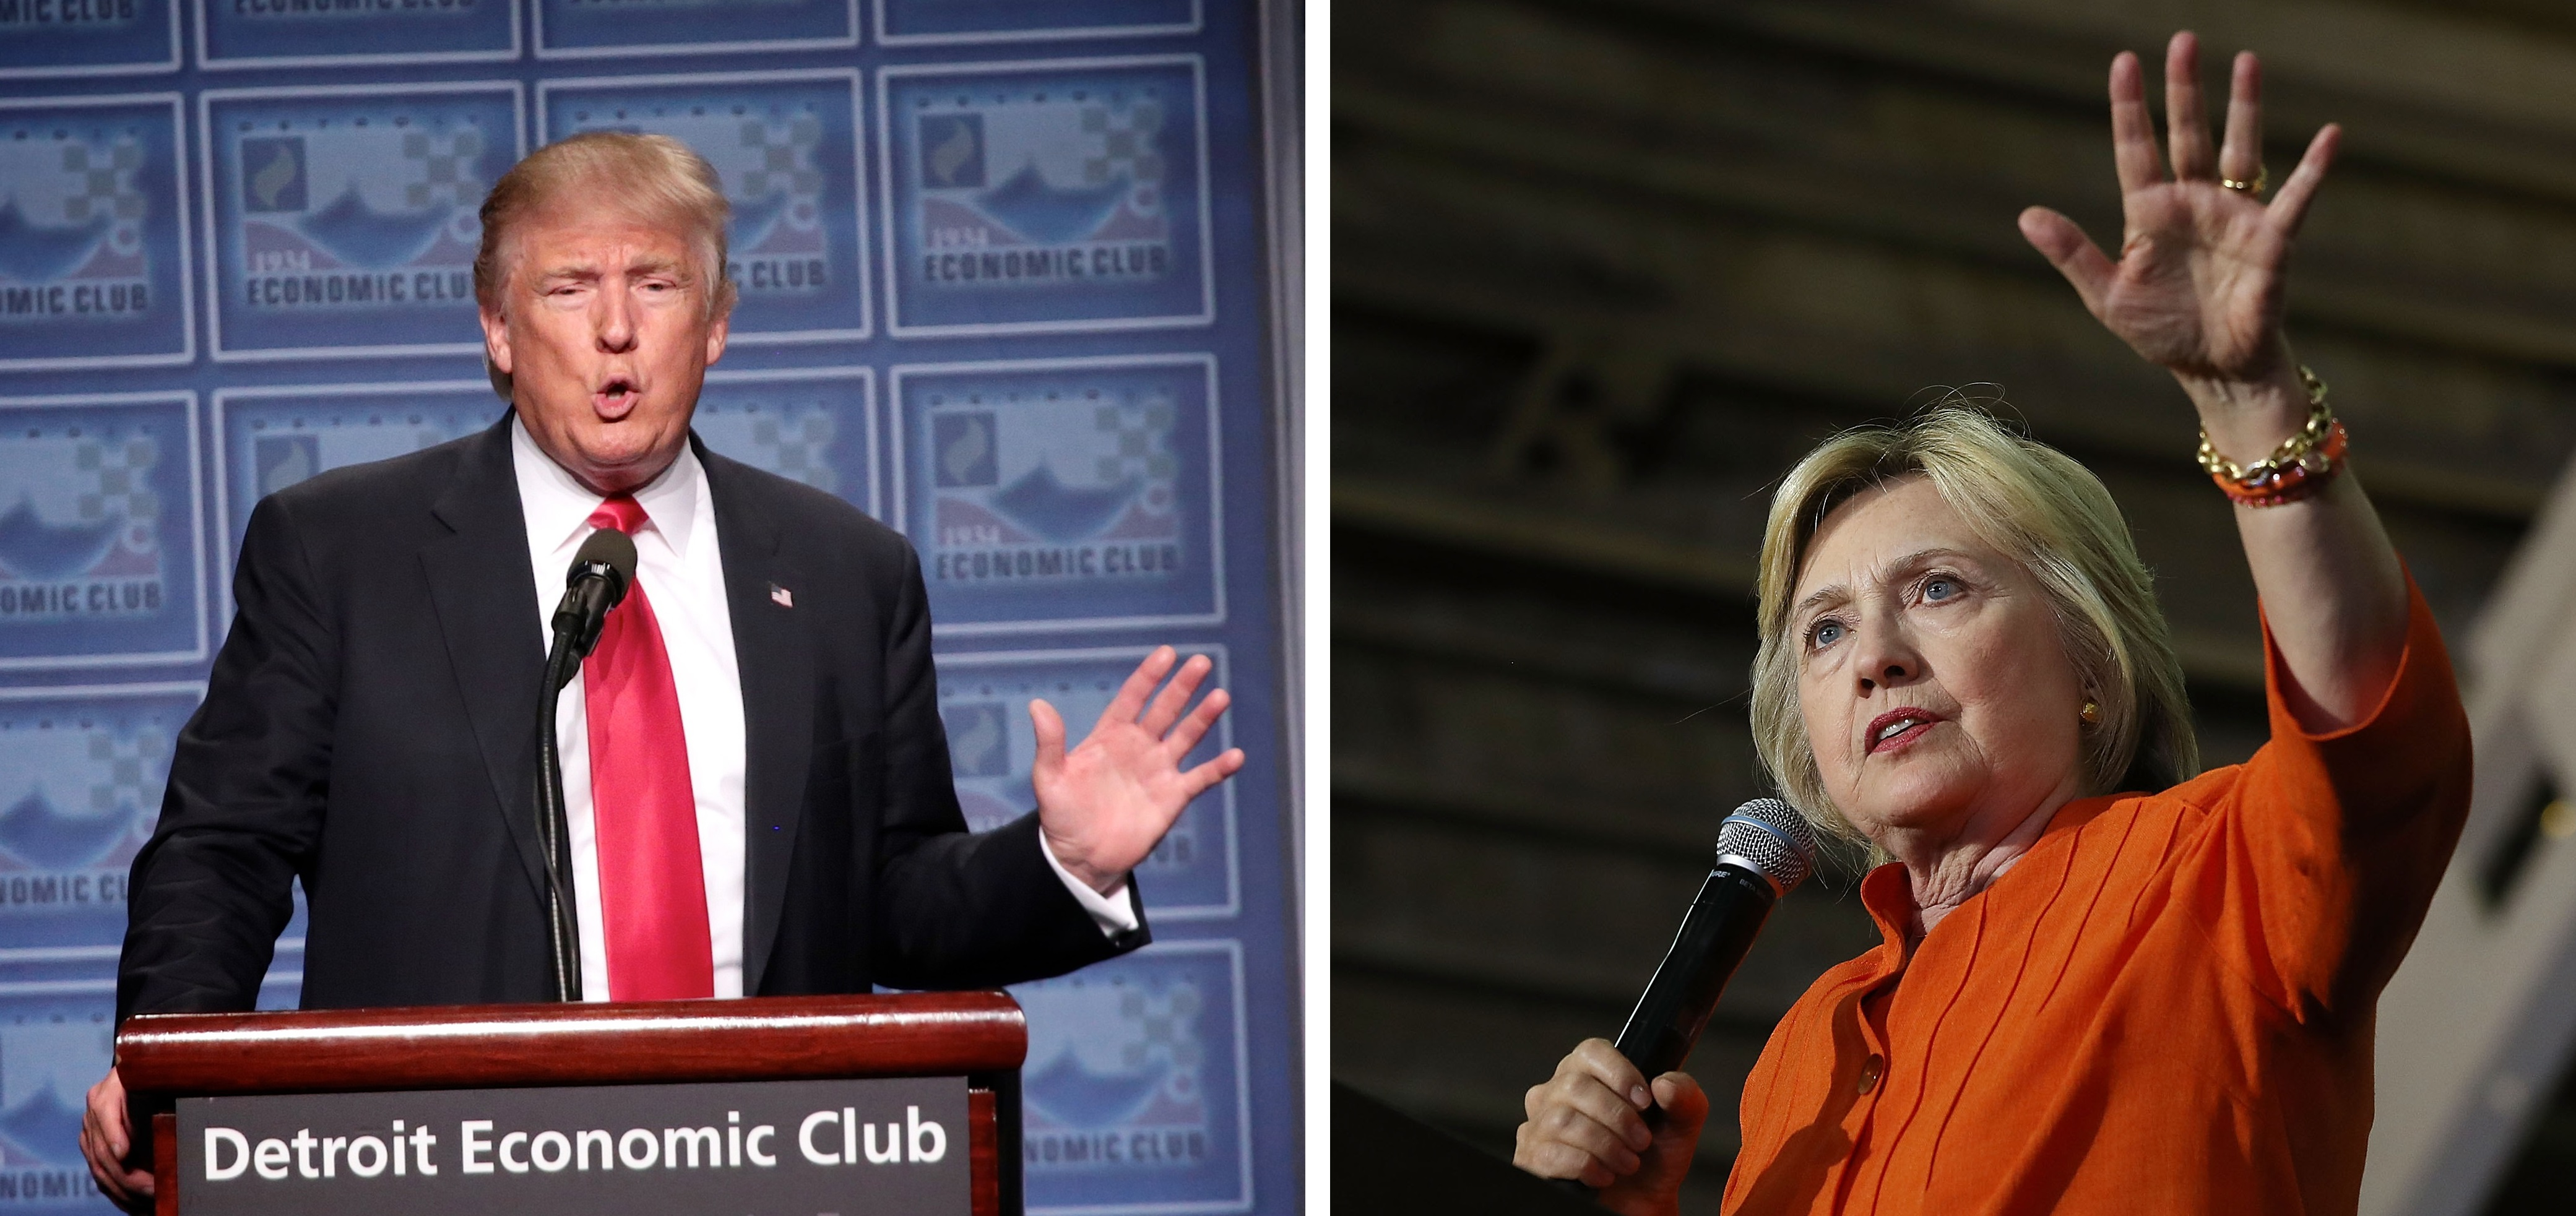 Both Donald Trump and Hillary Clinton will be talking about their visions for the economy on the campaign trail this week. (Detroit Free Press and Getty Images)